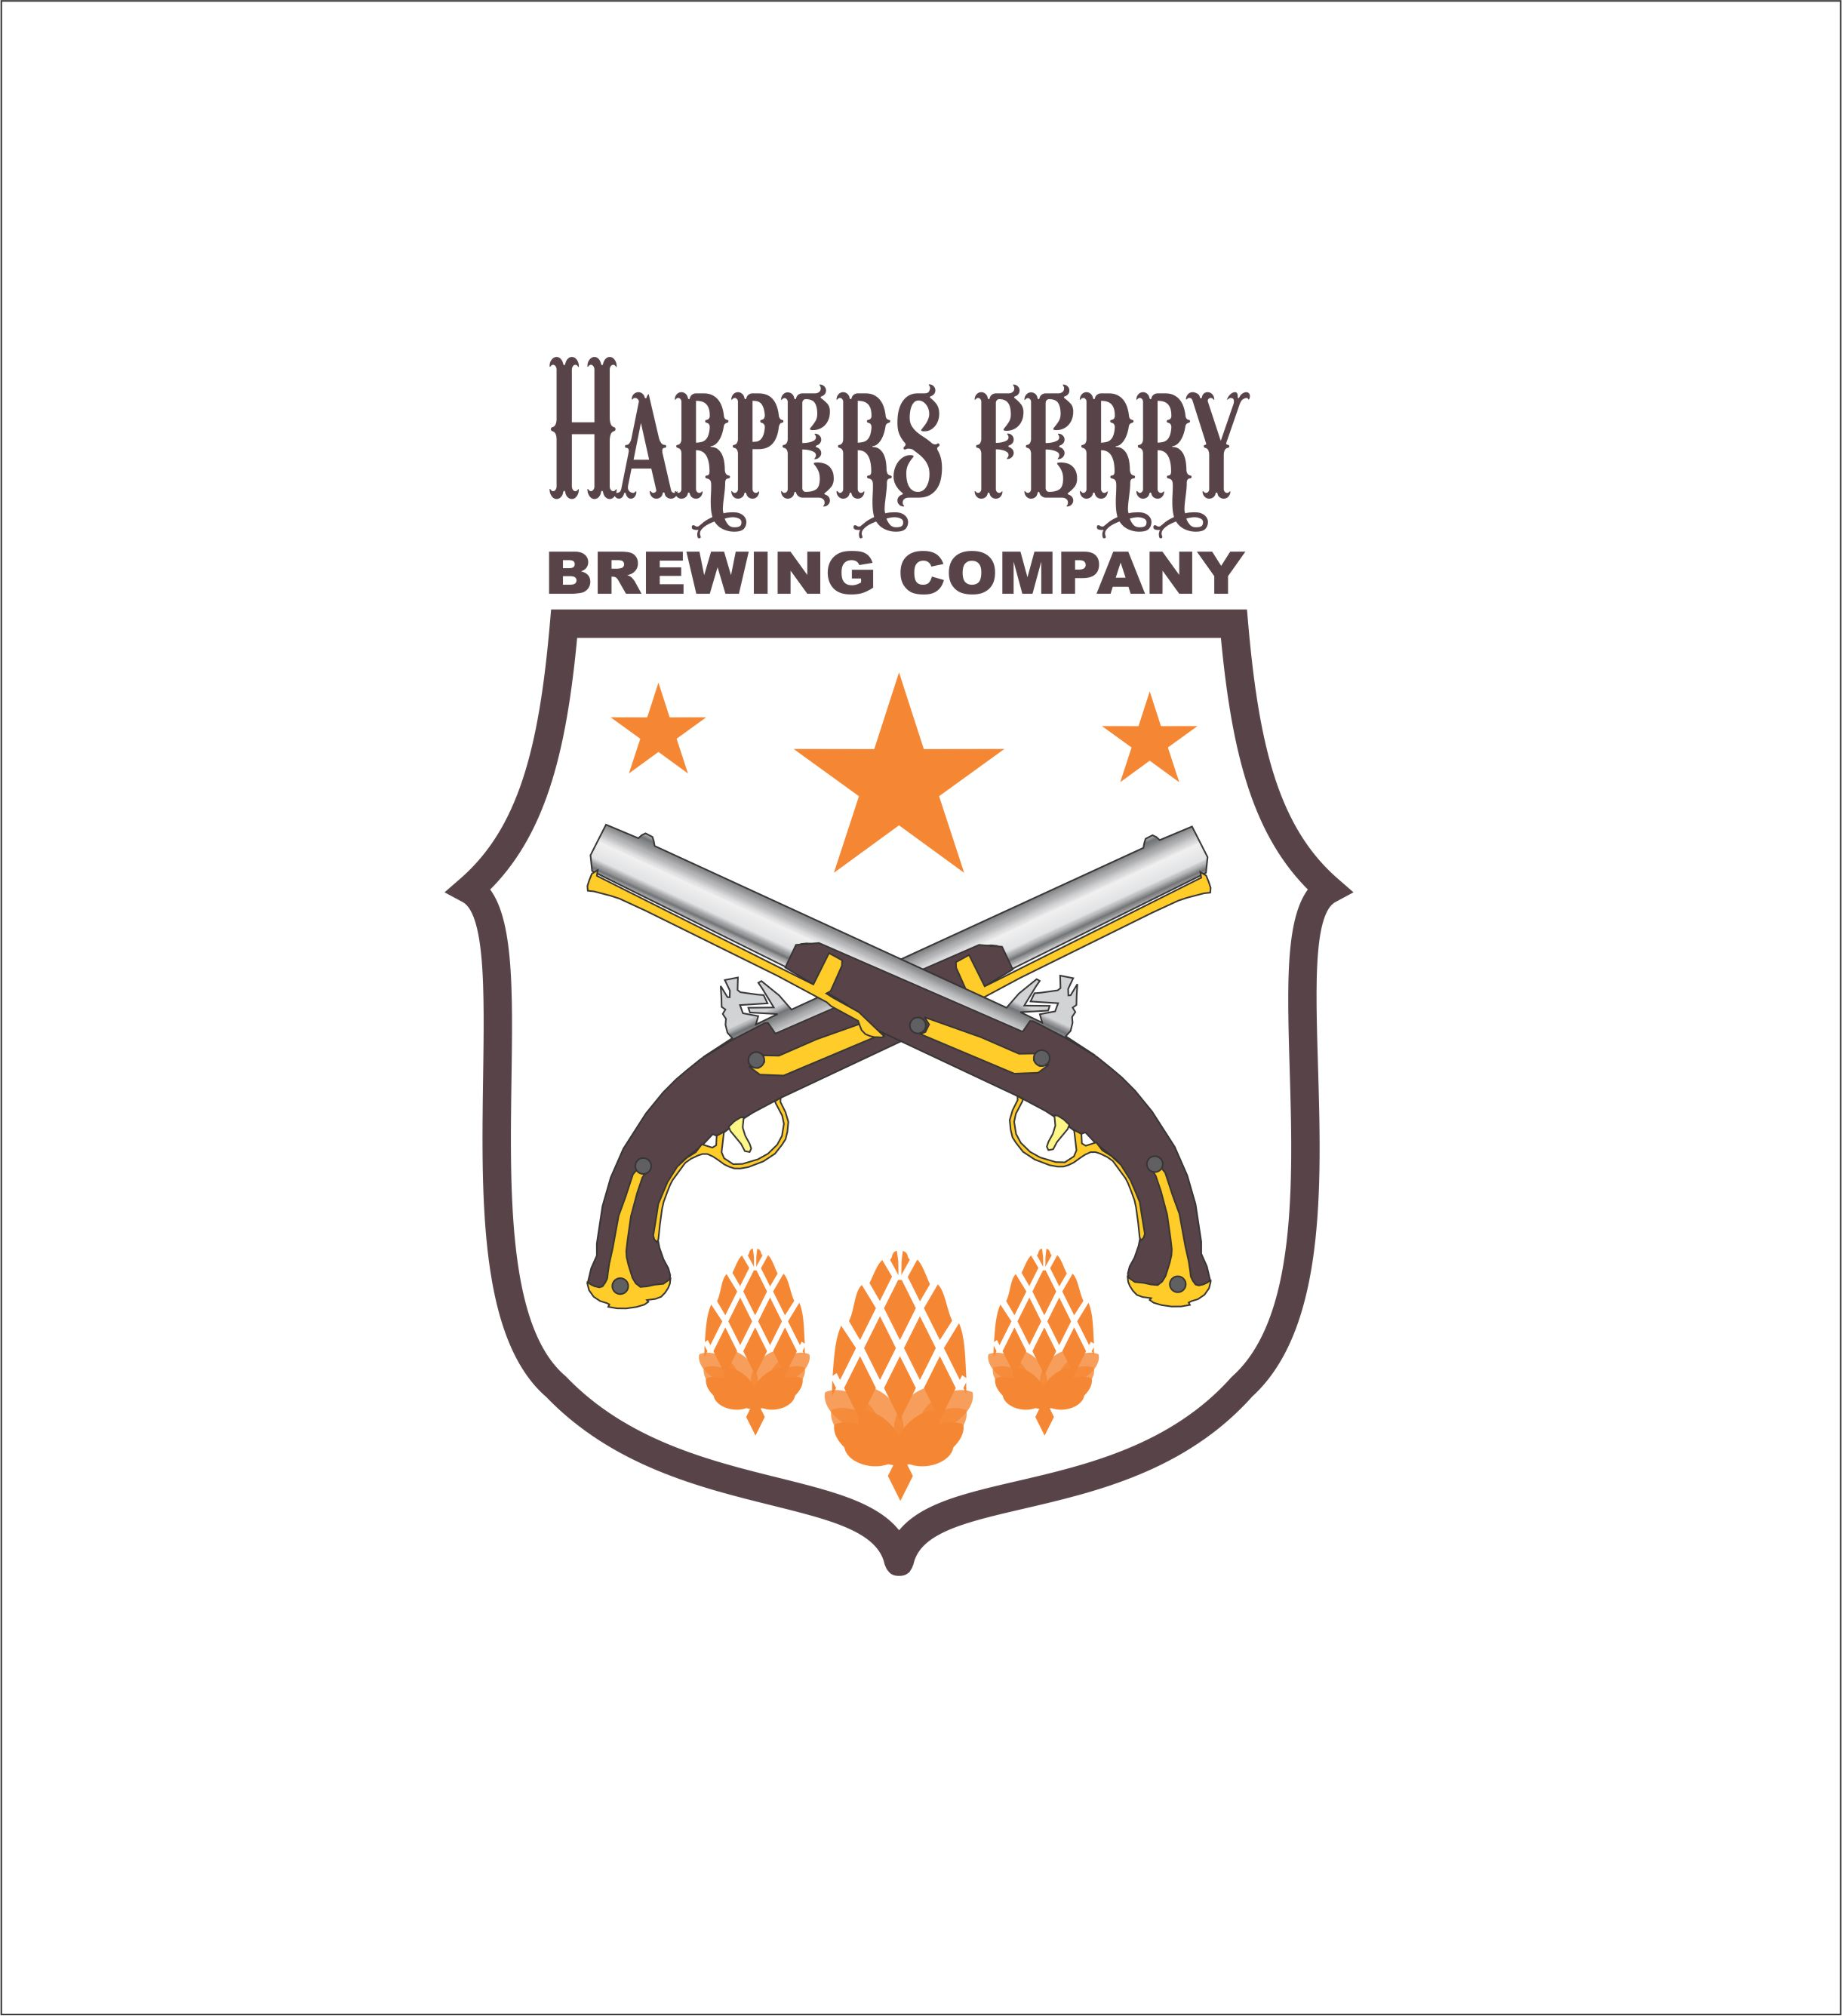 Logo Design by Nikola Kapunac - Entry No. 37 in the Logo Design Contest Unique Logo Design Wanted for Harpers ferry brewing company.